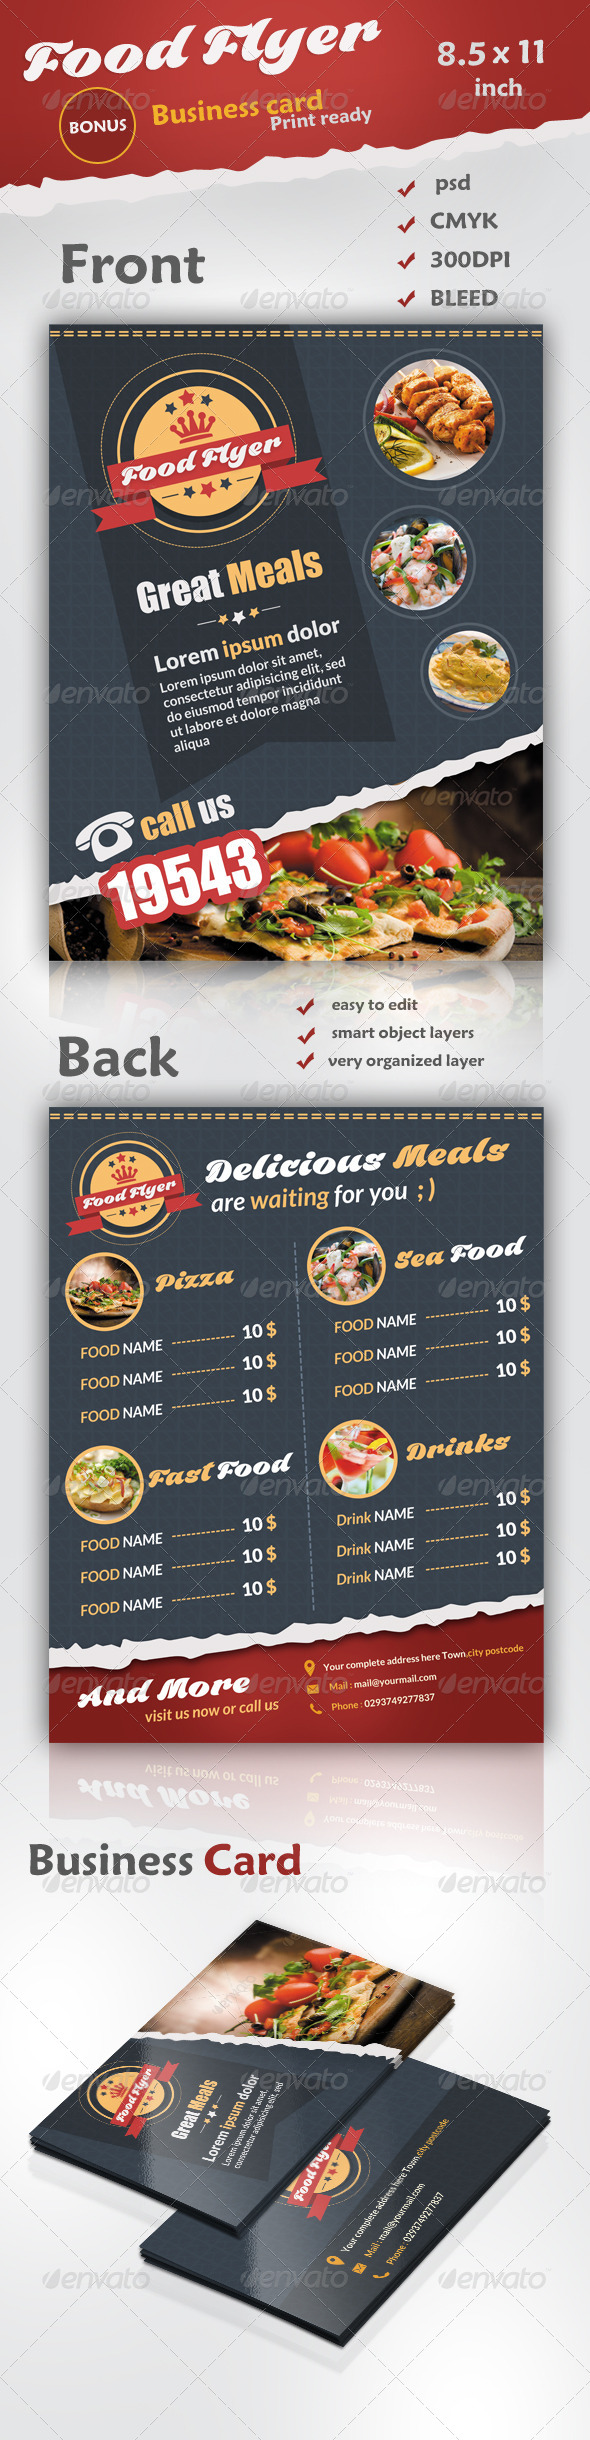 Food Flyer - Business Card